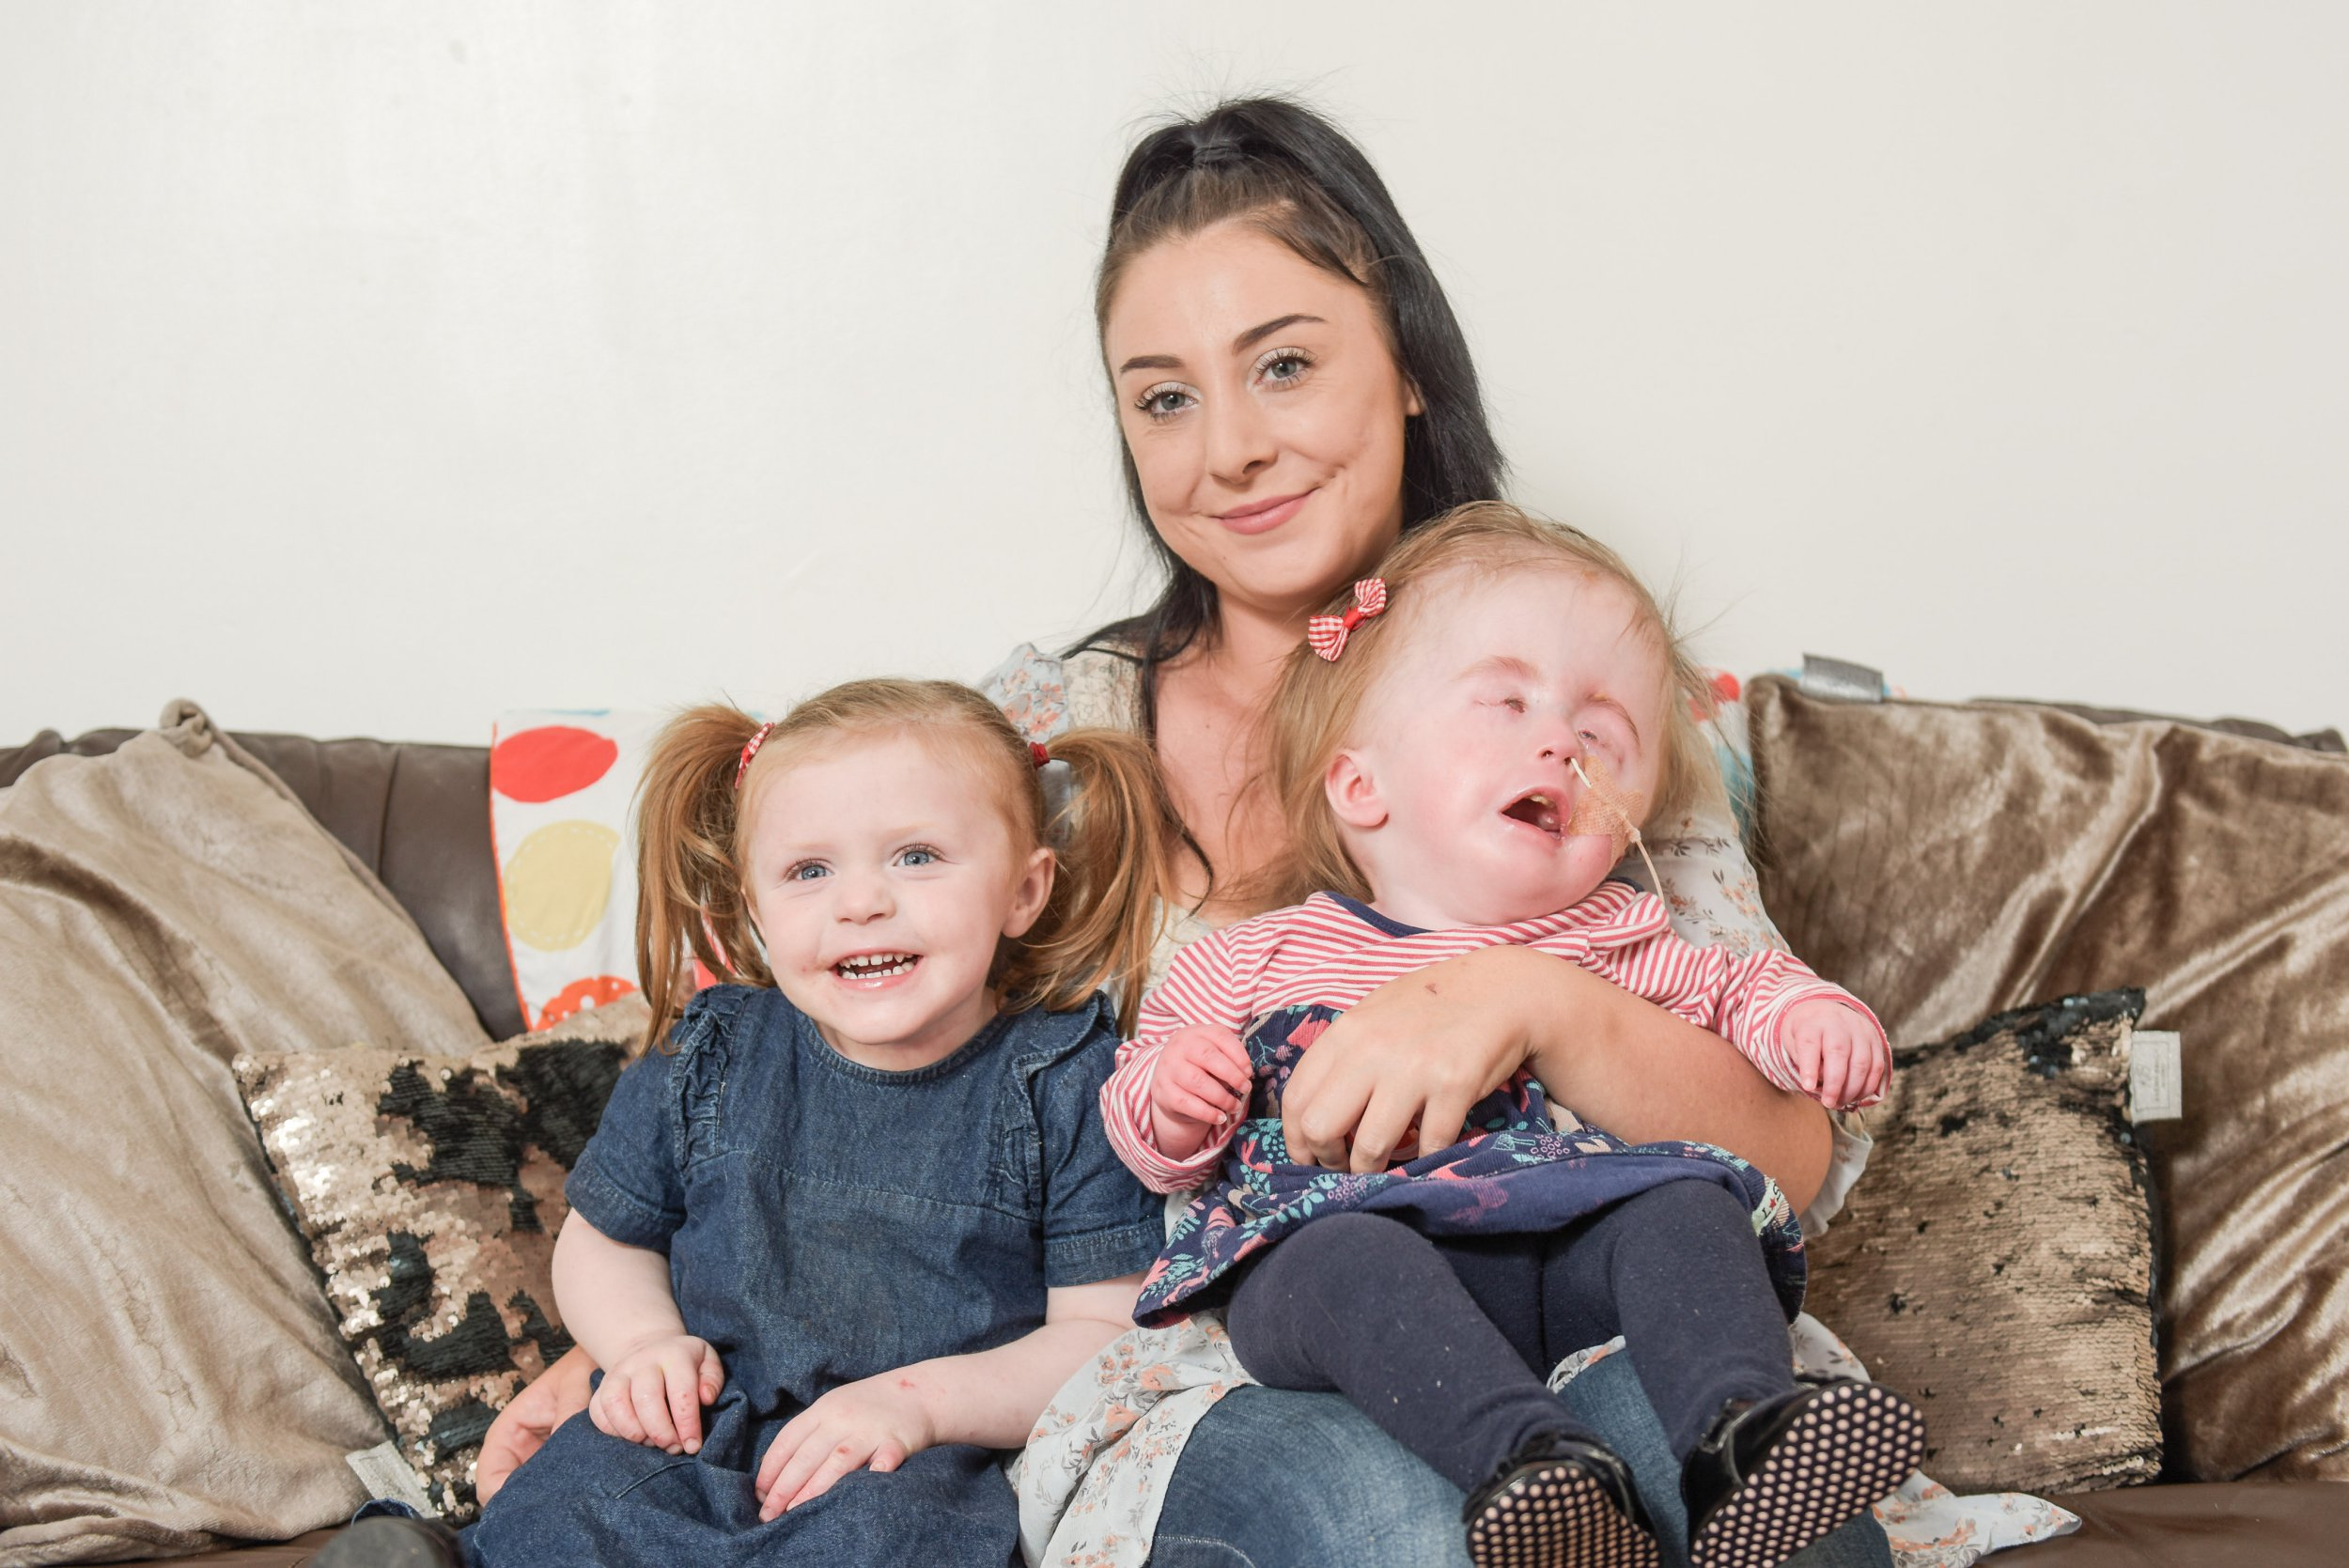 MERCURY PRESS. 10/08/18. Pictured: Pearl Jones, 24 with her daughters Annabella (left) and Aubrey (right). A baby girl has had to have her eyes stitched shut as her eyelids were stretched by her oversized head which swelled to the size of a four year olds due to a rare condition. Aubrey Jones, 19 months, suffers from the rare condition hydrocephalus, which has caused her head to grow much larger than her three-year-old sister Annabella Joness. The tots condition is so severe that her mum Pearl Jones, 24, claims she was offered a late termination as she was told it was unlikely Aubrey would survive for more than three hours. But Aubrey beat all the odds and came through six surgeries to be allowed home with her loving mum and sister, where she now lives a comfortable' life. SEE MERCURY COPY